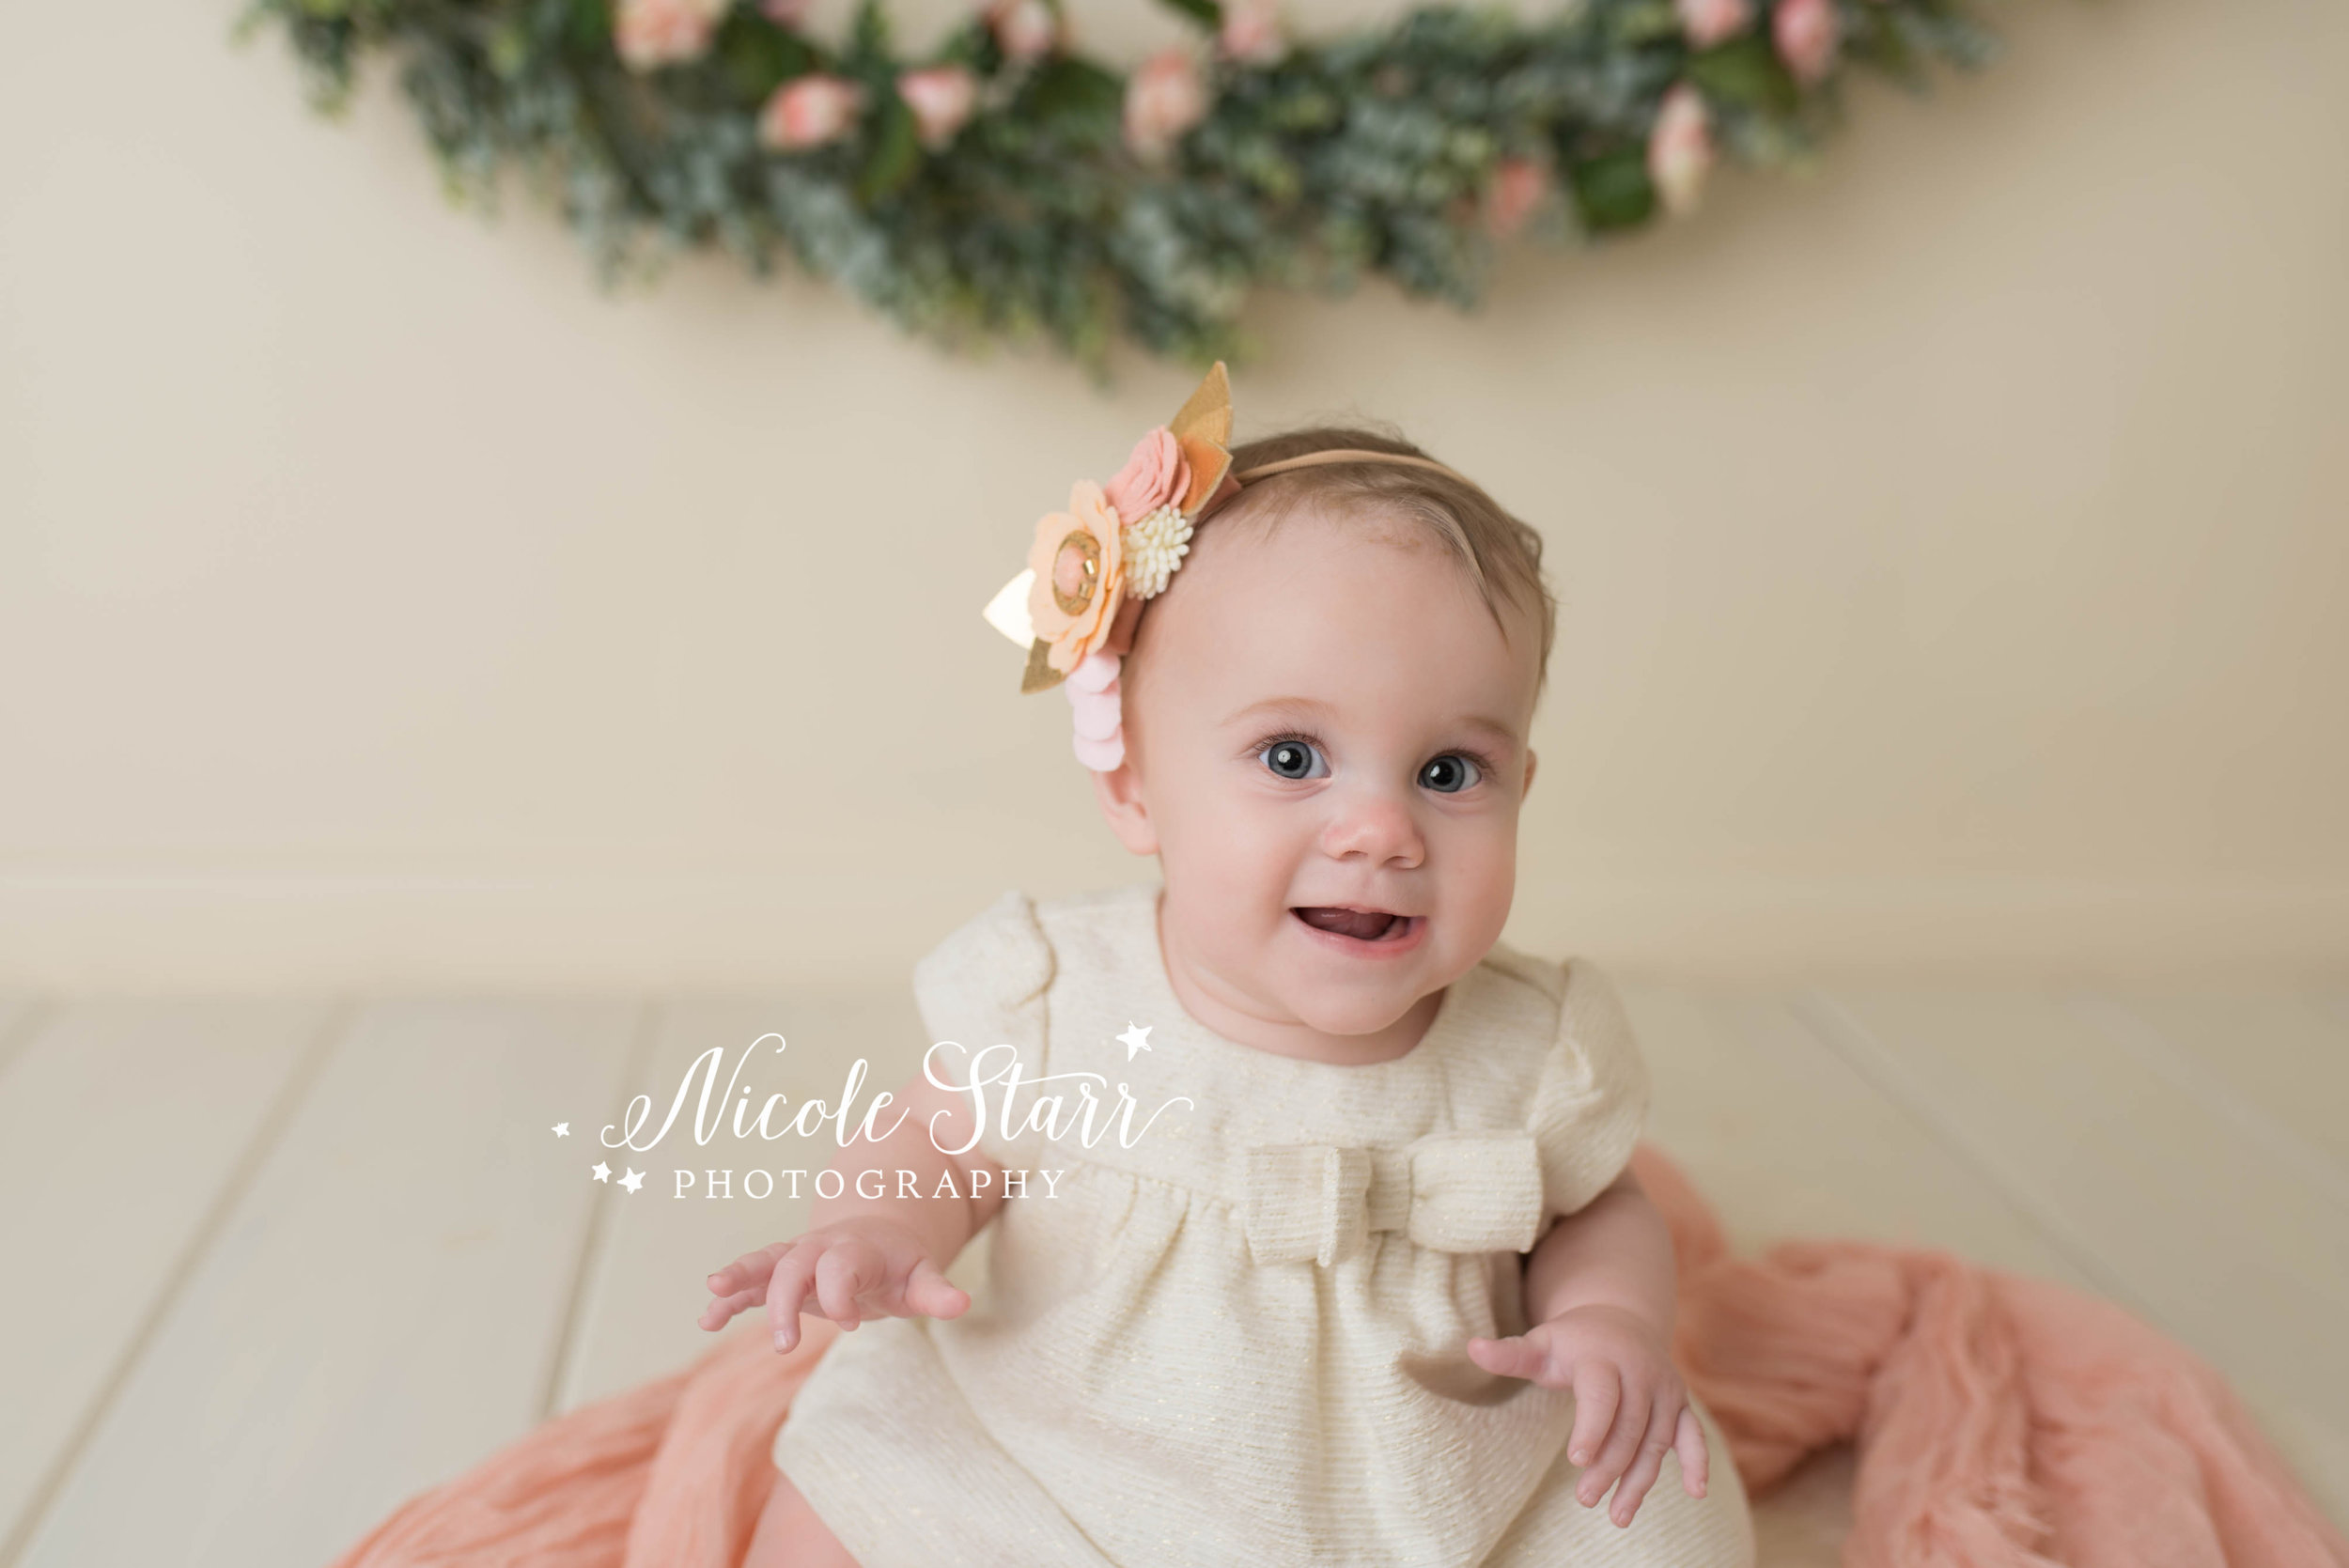 Nicole Starr Photography | Saratoga Springs, NY | milestone session | children's photographer